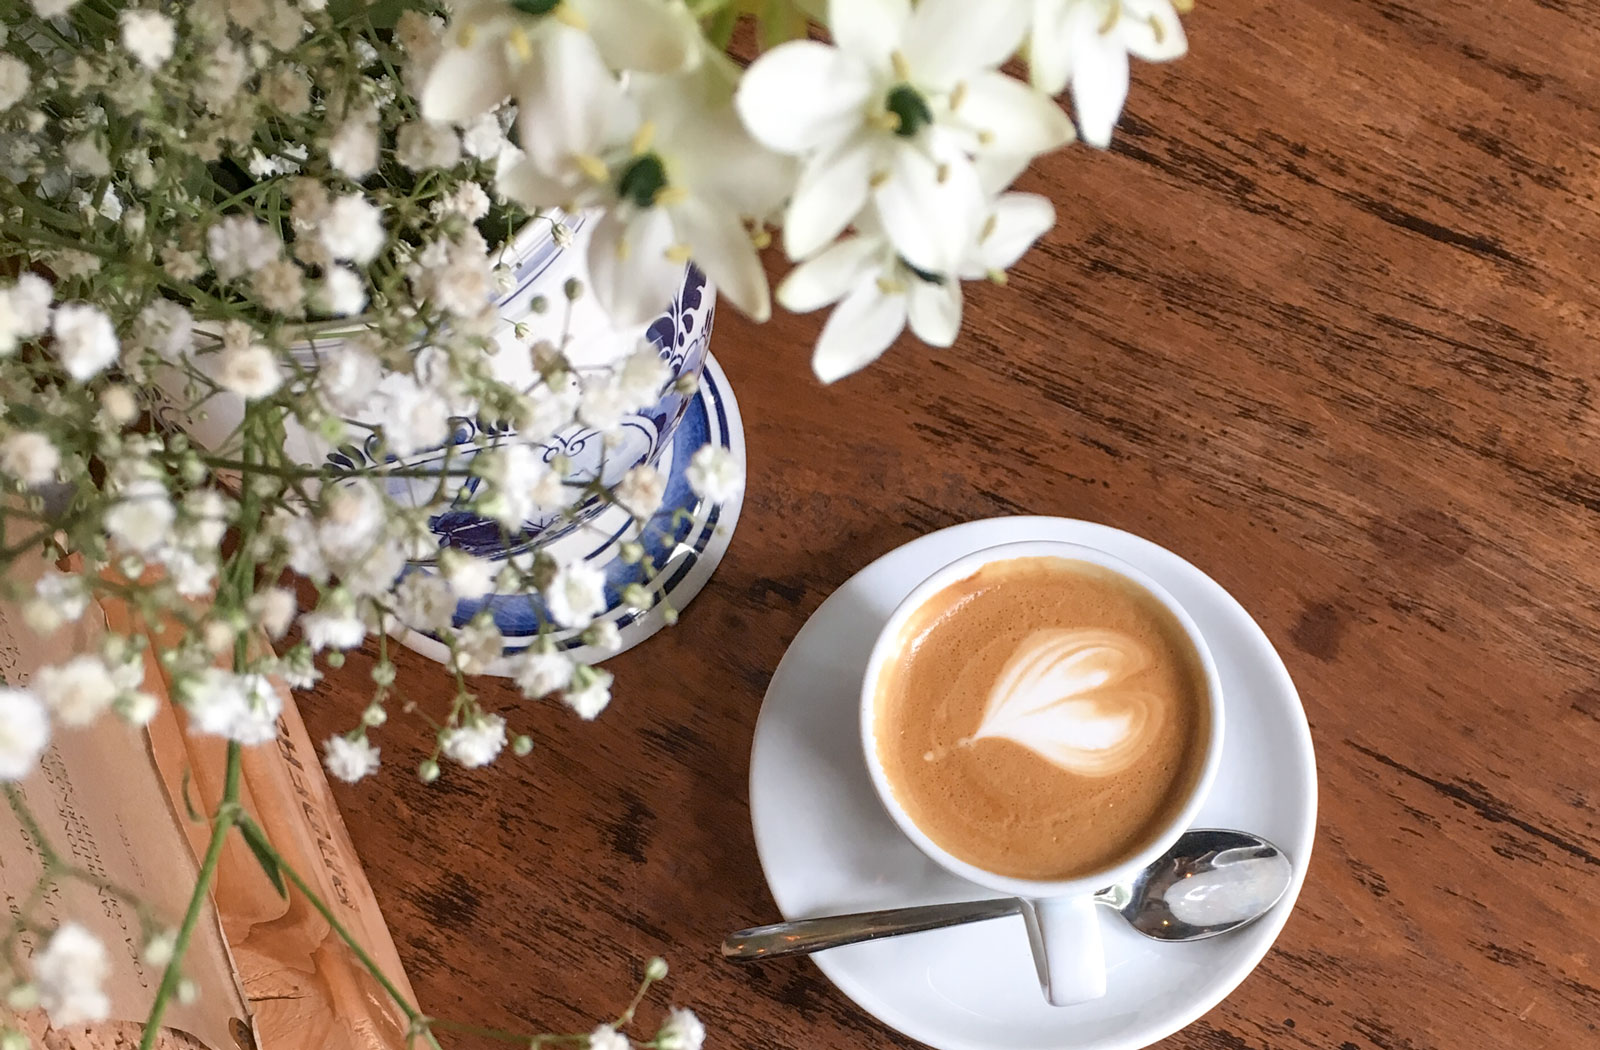 Food Photography - Coffee and flowers